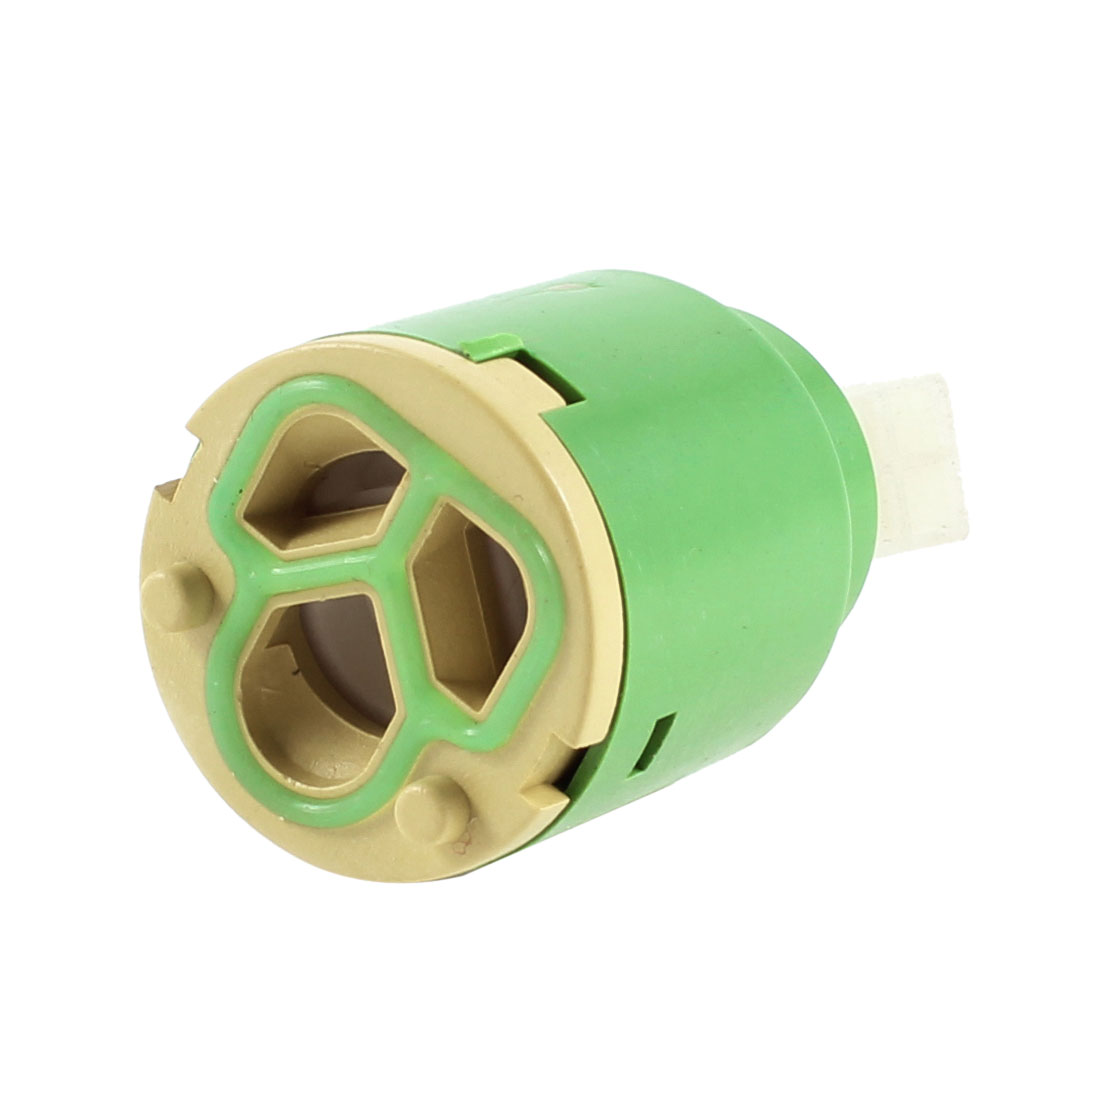 Green Rotary Lever 25mm Dia Faucet Ceramic Cartridge Valve